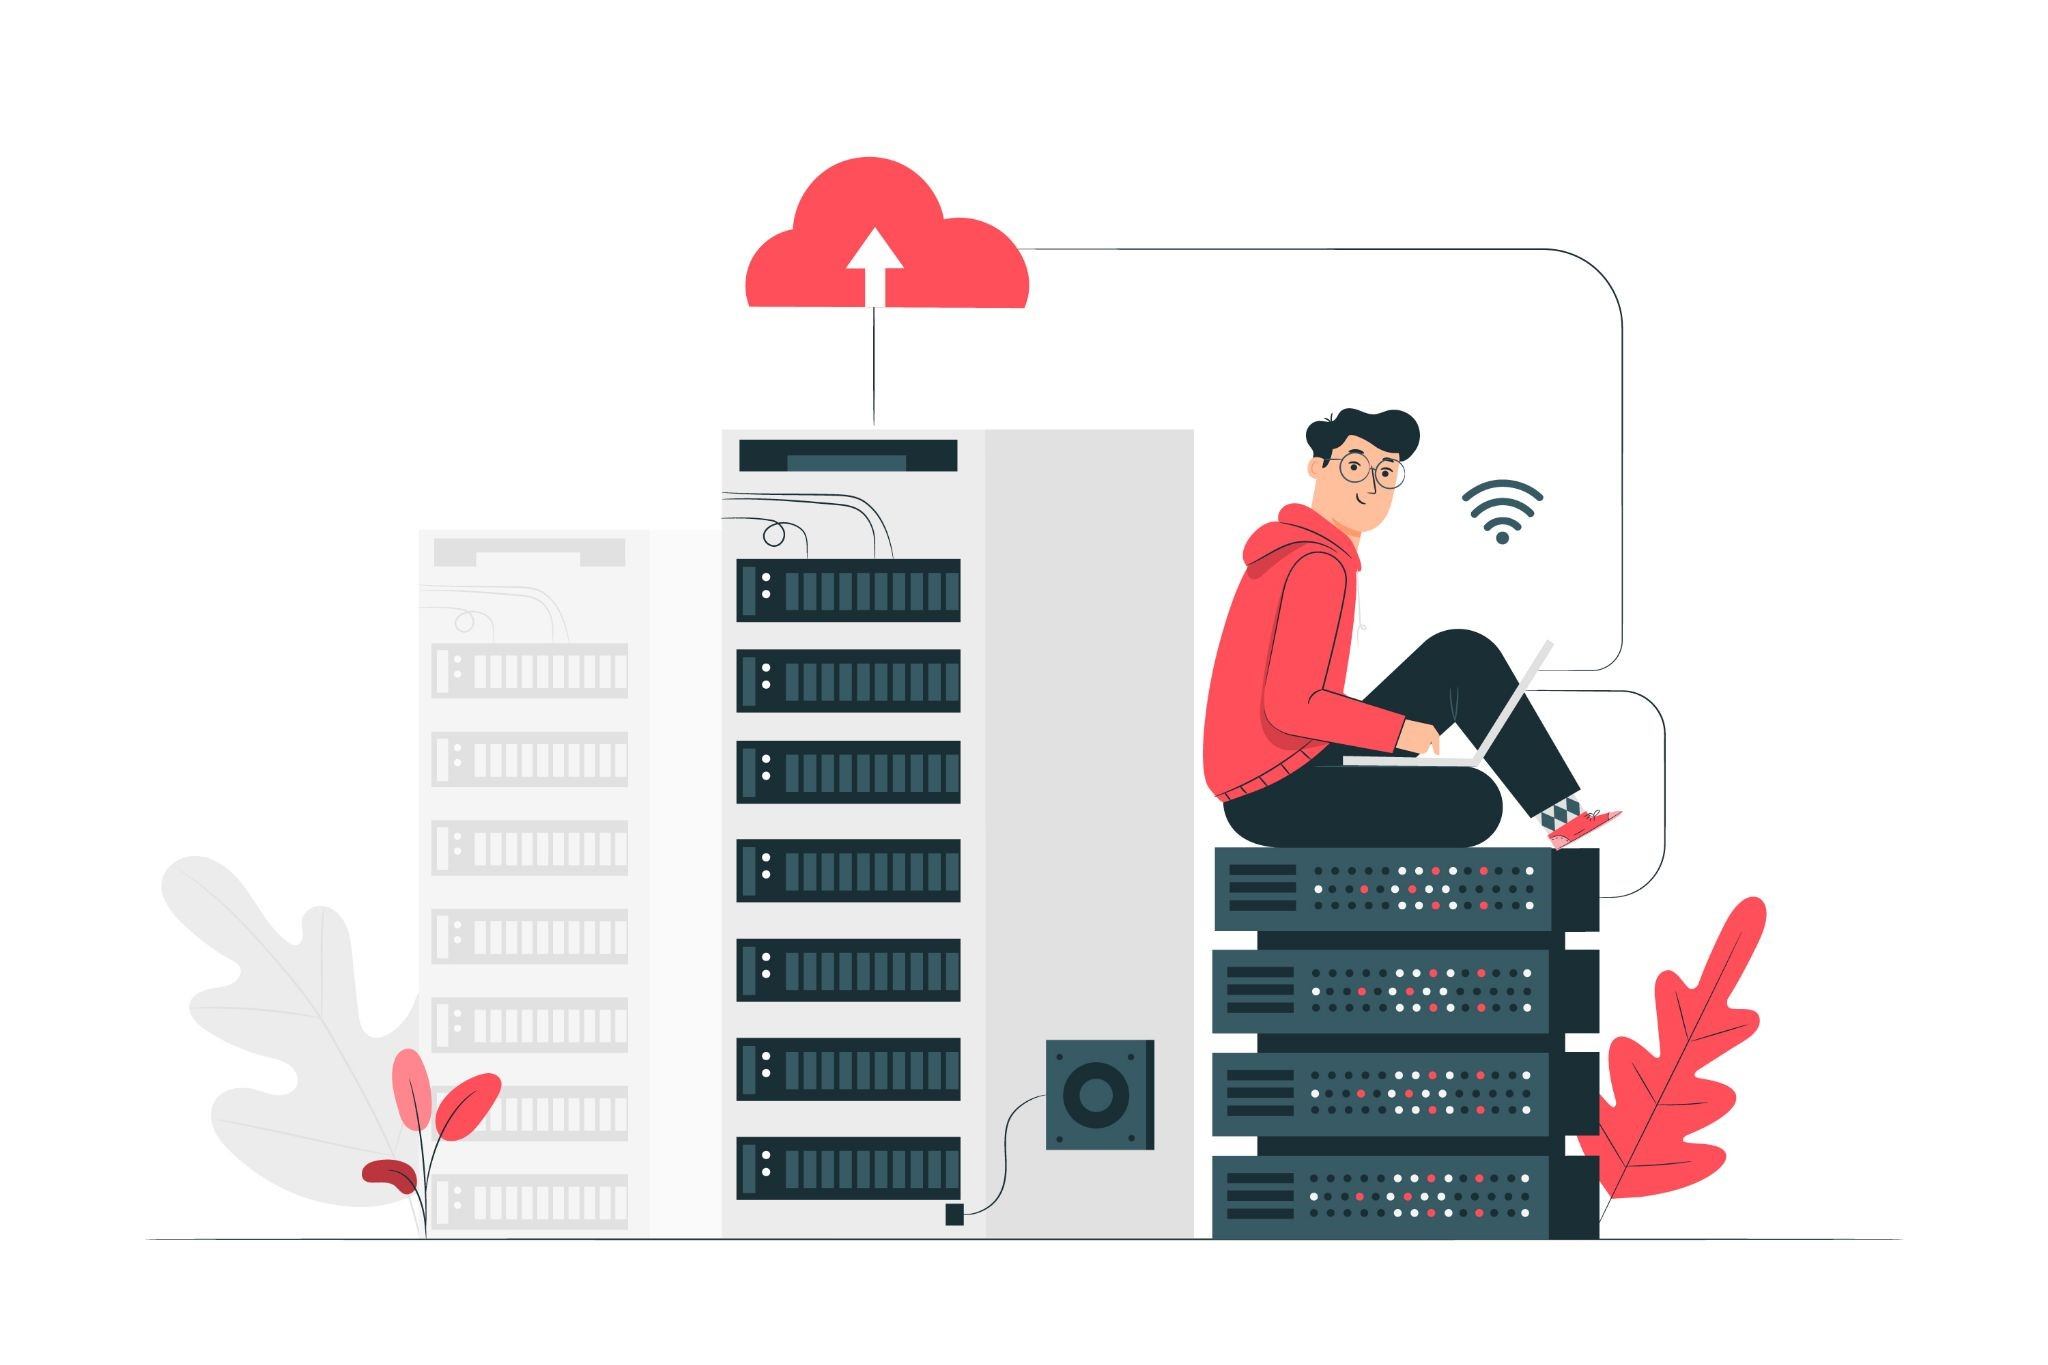 7 Things to Consider when Choosing a WordPress Hosting Provider